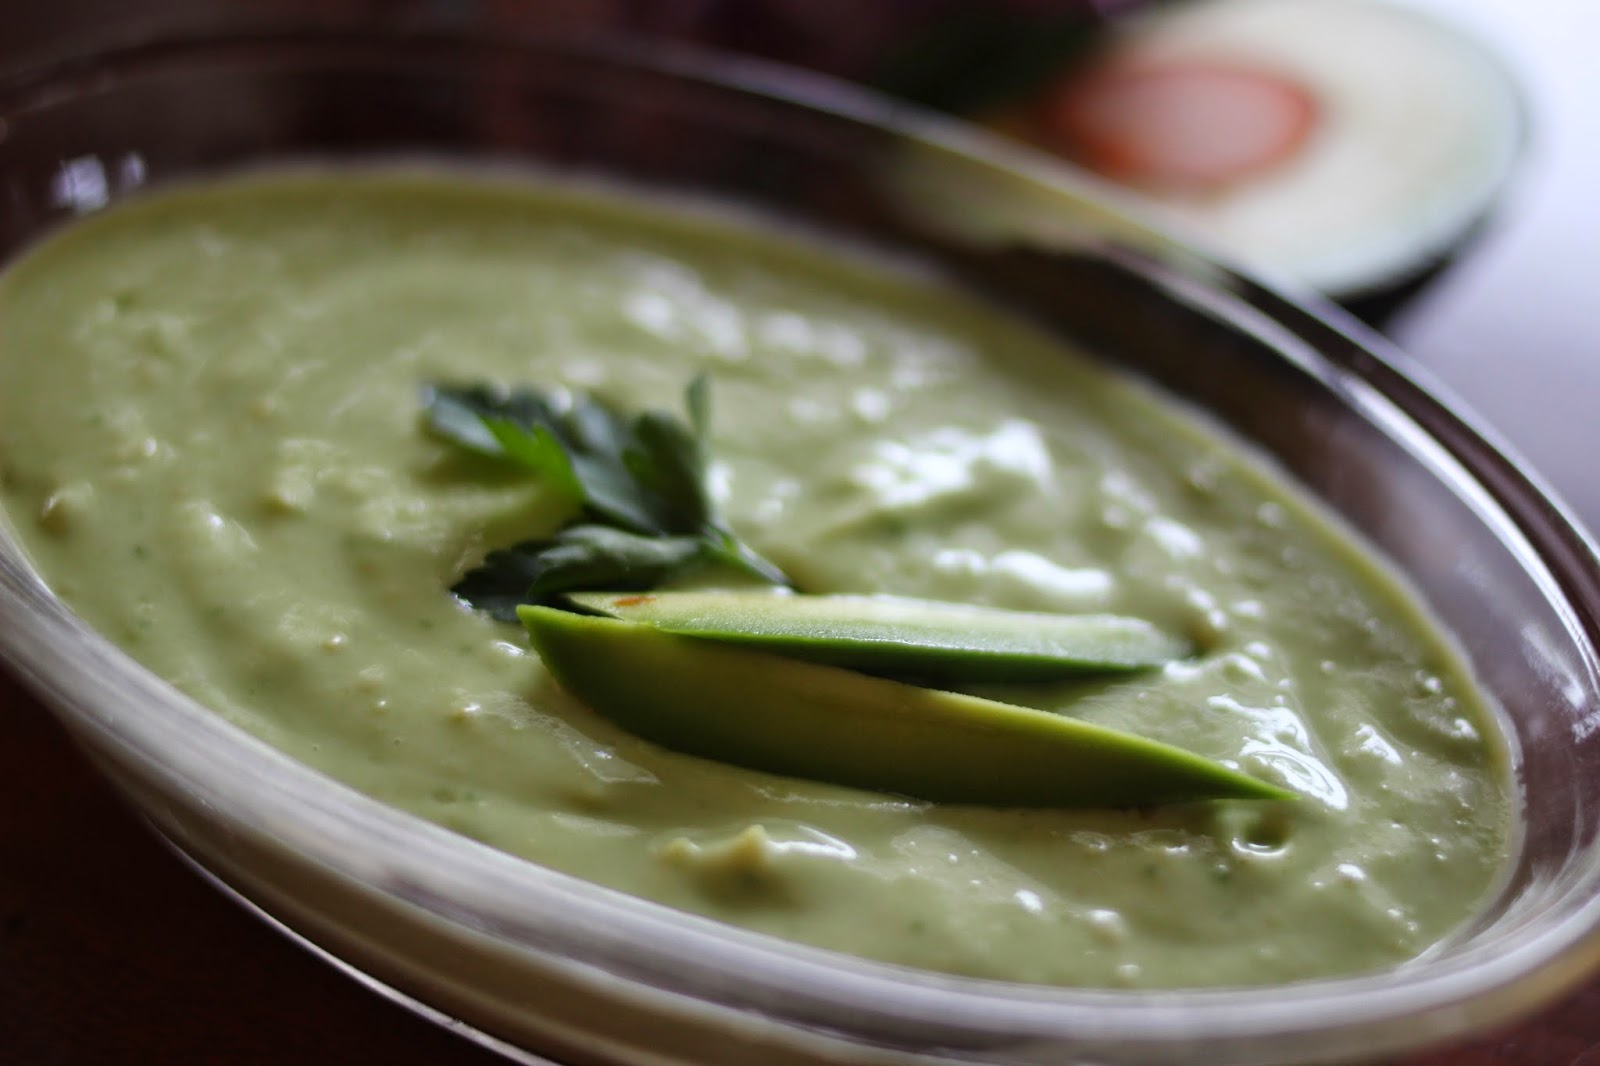 Running Girl Health and Fitness: Chilled Avocado Coconut Soup